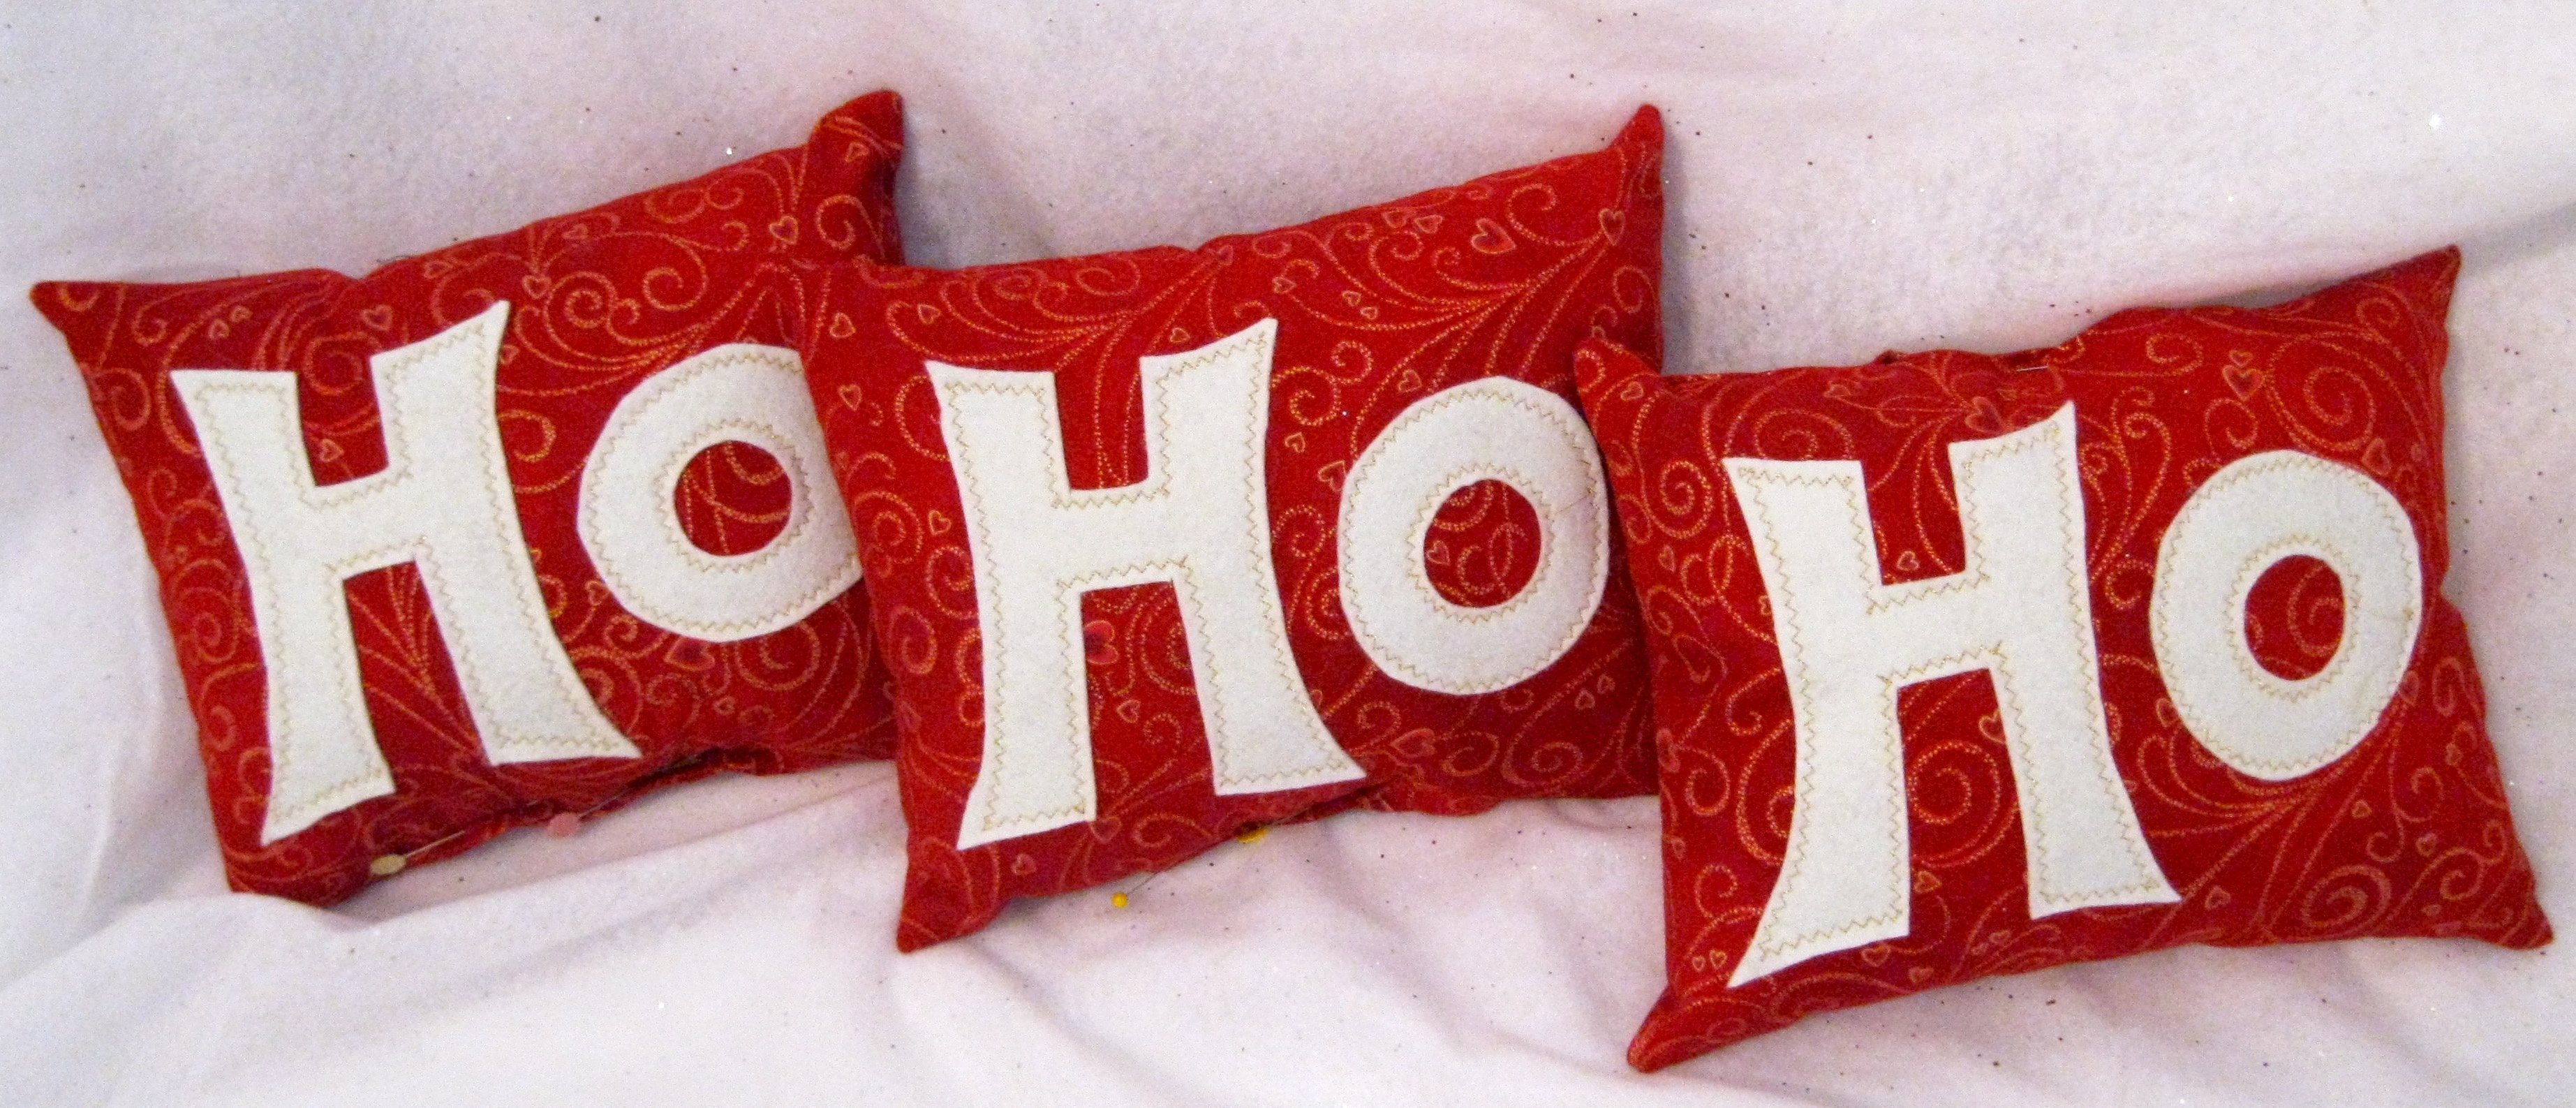 Ho Ho Ho pillows - so cute